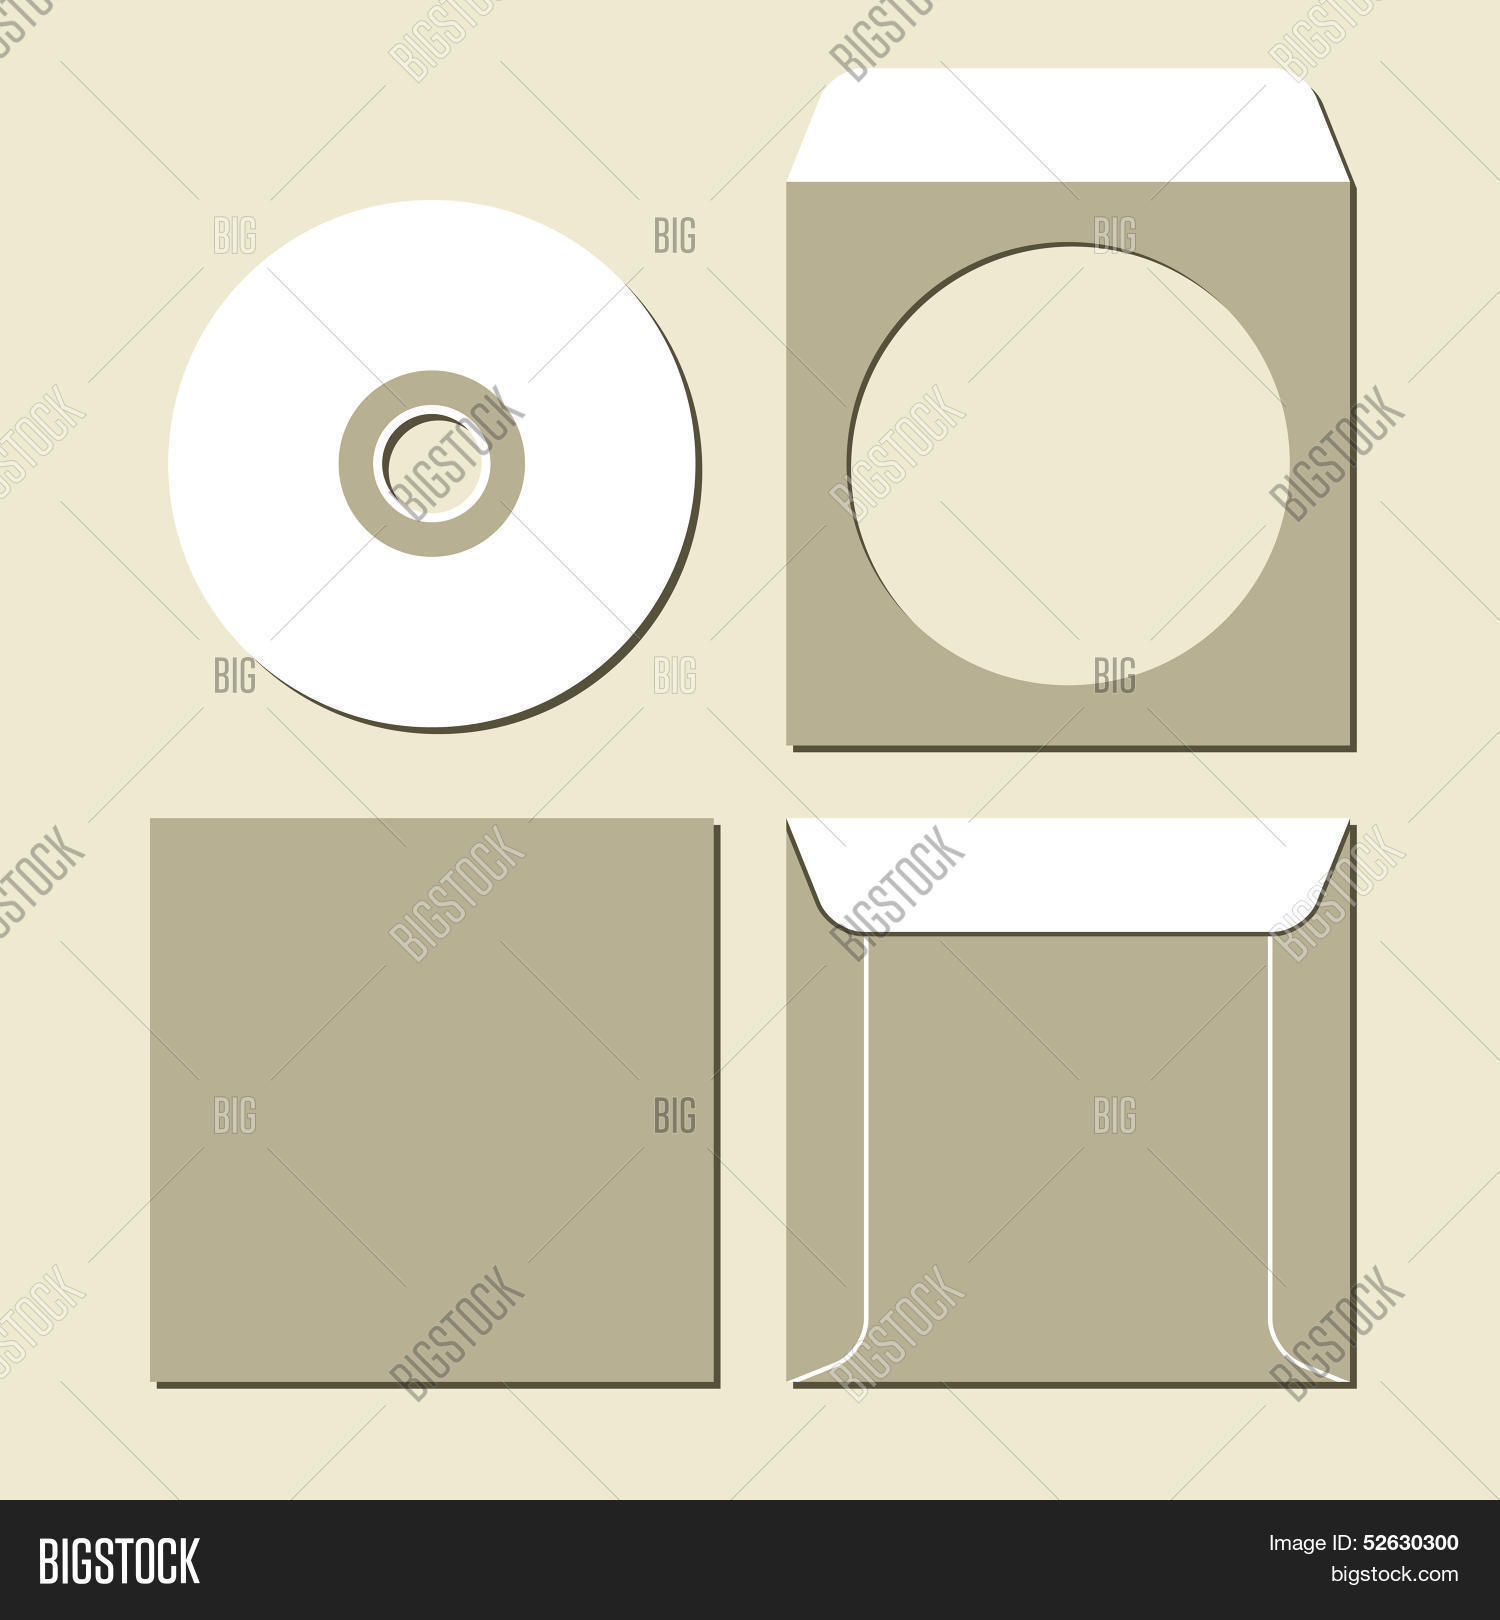 hight resolution of blank white compact disc with a gray background